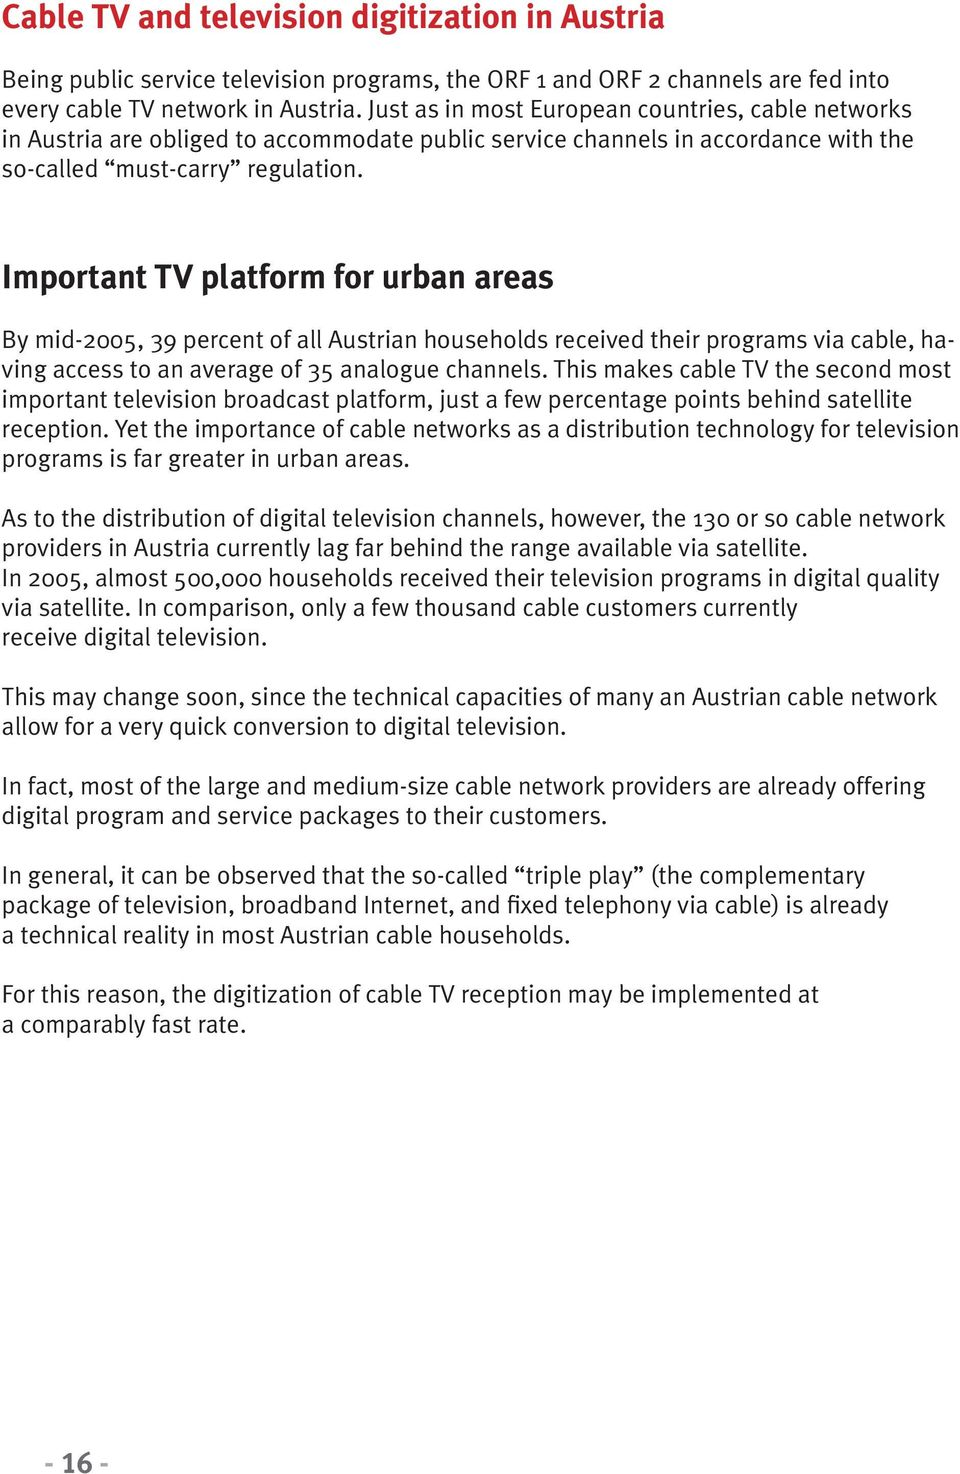 Important TV platform for urban areas By mid-2005, 39 percent of all Austrian households received their programs via cable, having access to an average of 35 analogue channels.